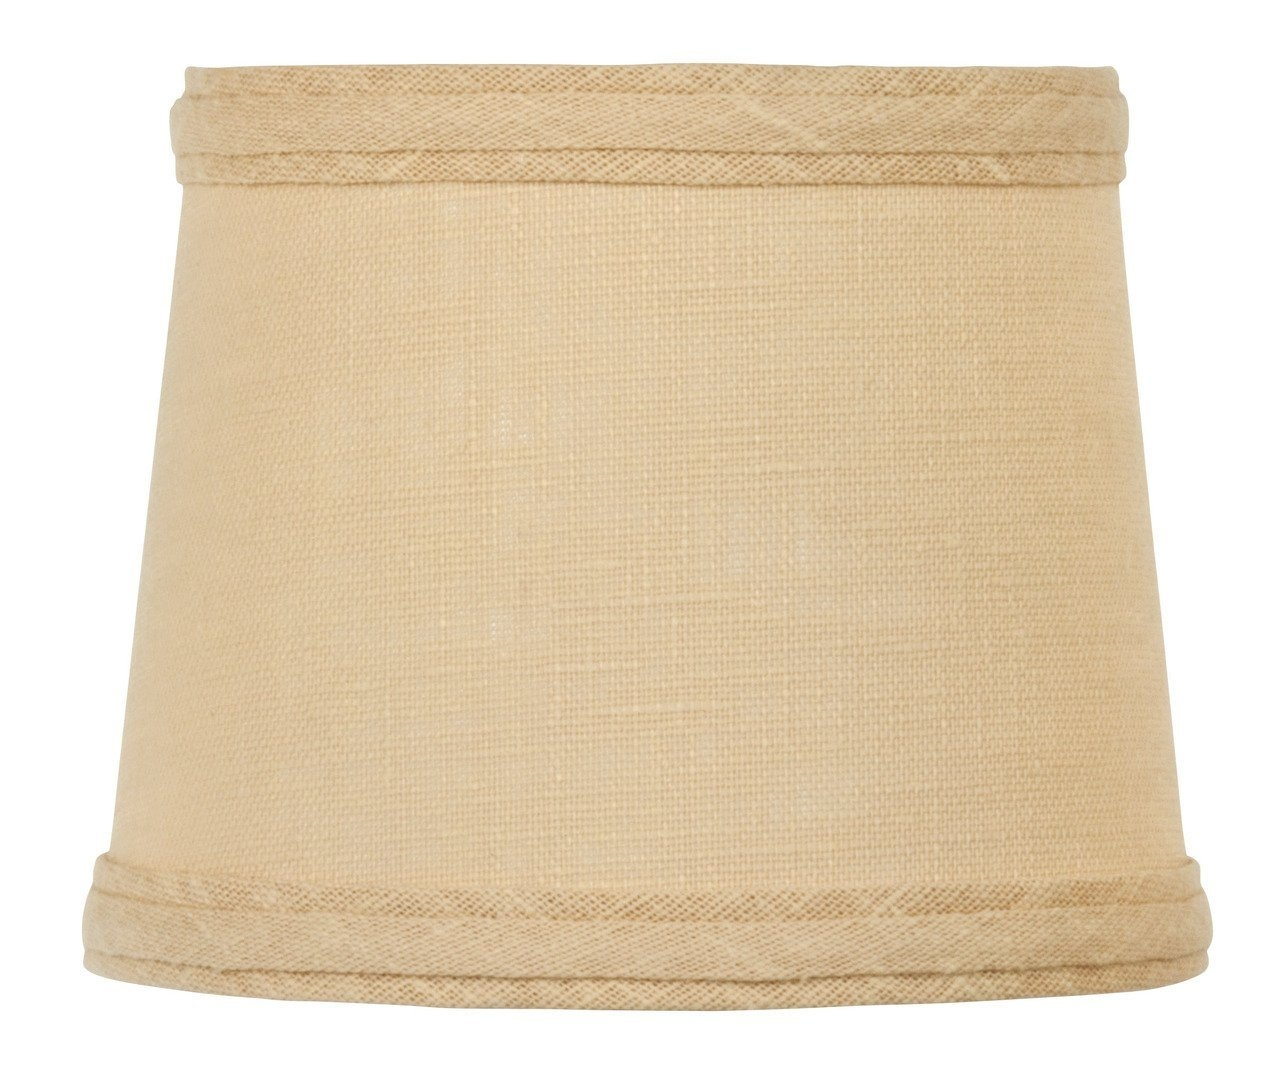 Upgradelights Sand Linen 6 Inch Drum Style Clip On Chandelier Mini Inside Clip On Drum Chandelier Shades (View 18 of 25)